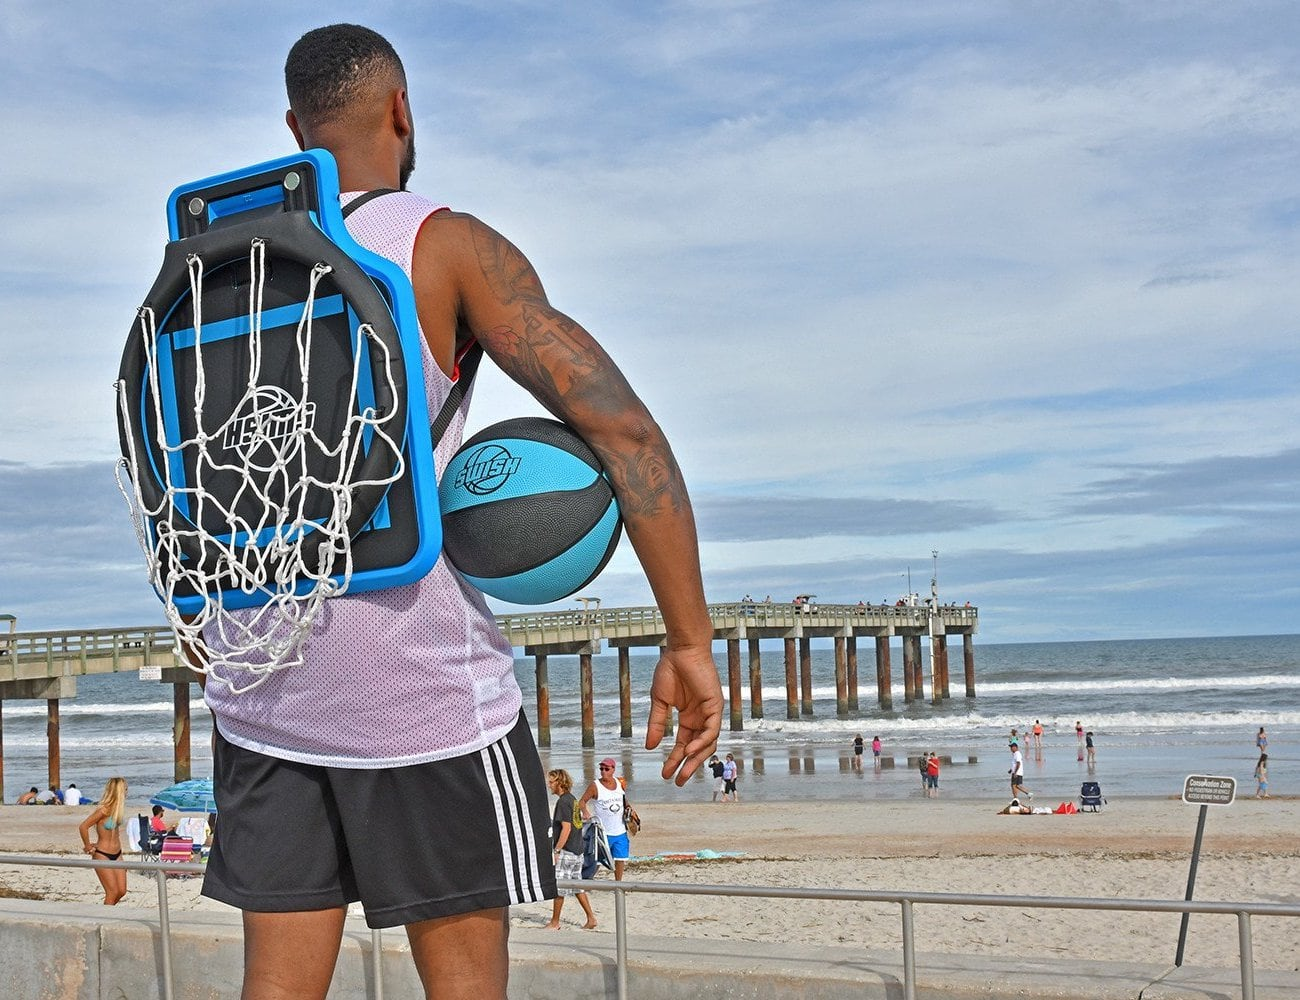 Swish Portable Basketball Hoop lets you play wherever, whenever